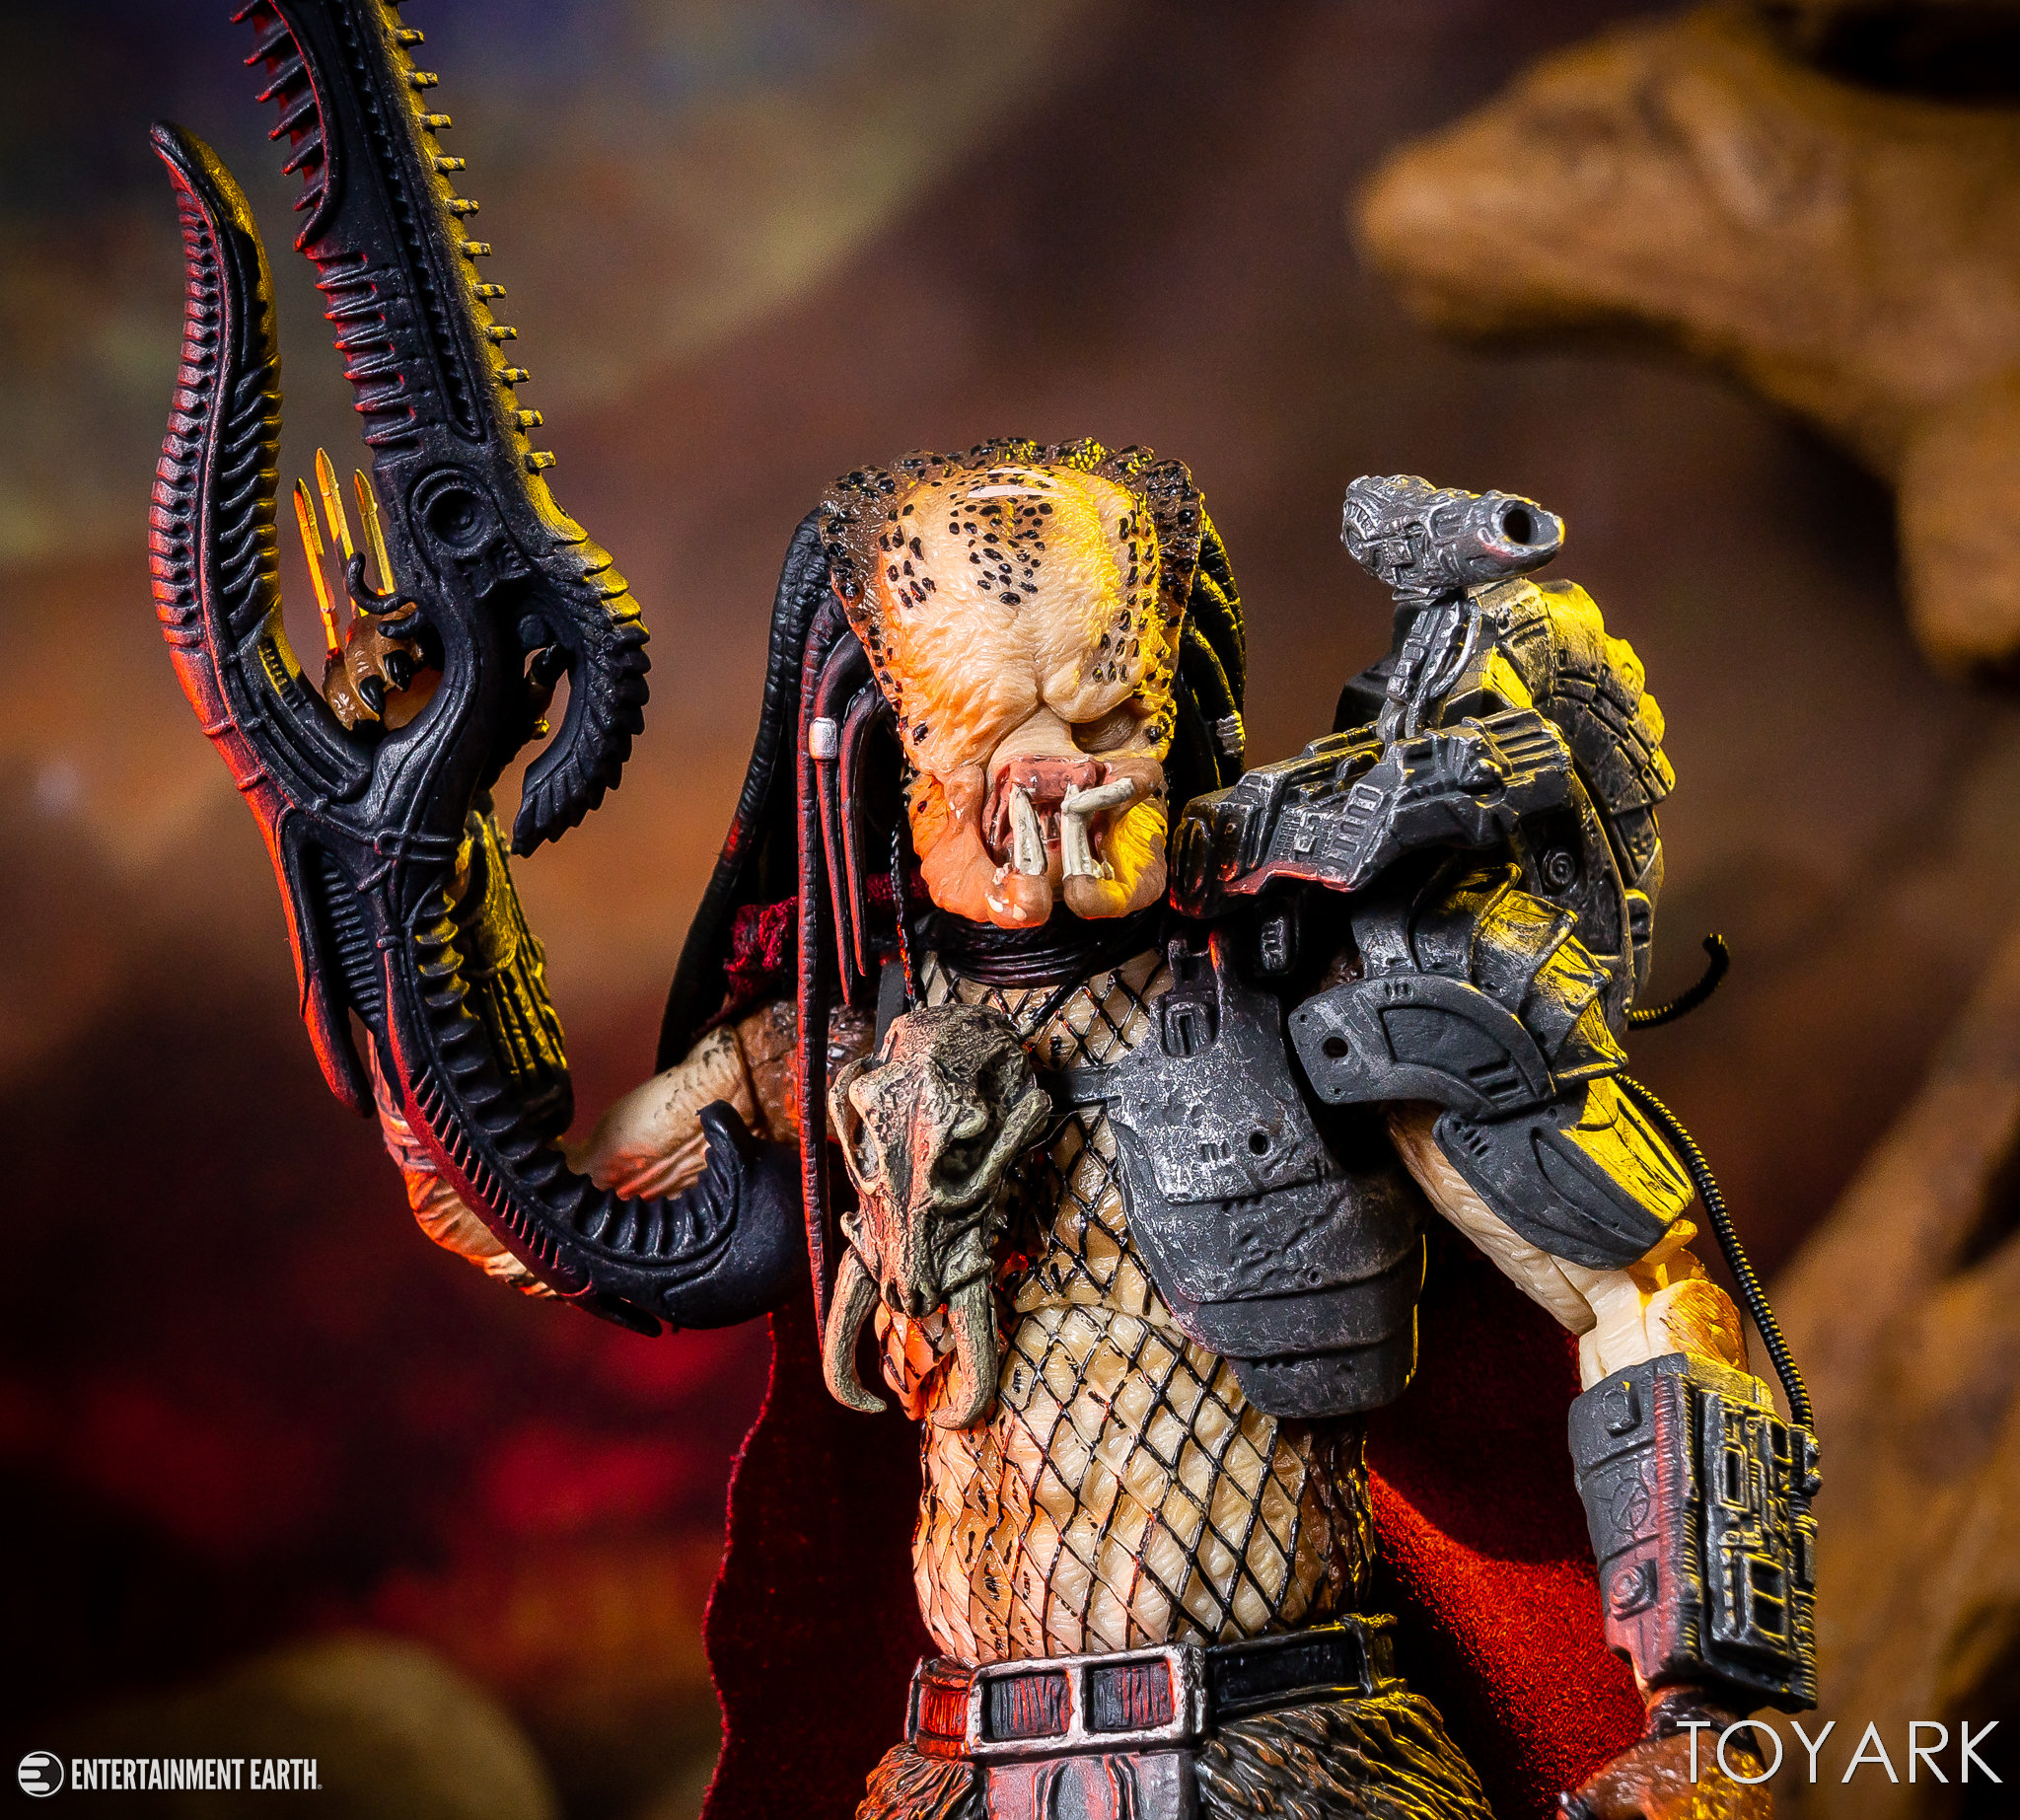 https://news.toyark.com/wp-content/uploads/sites/4/2018/11/NECA-Ultimate-Ahab-Predator-047.jpg